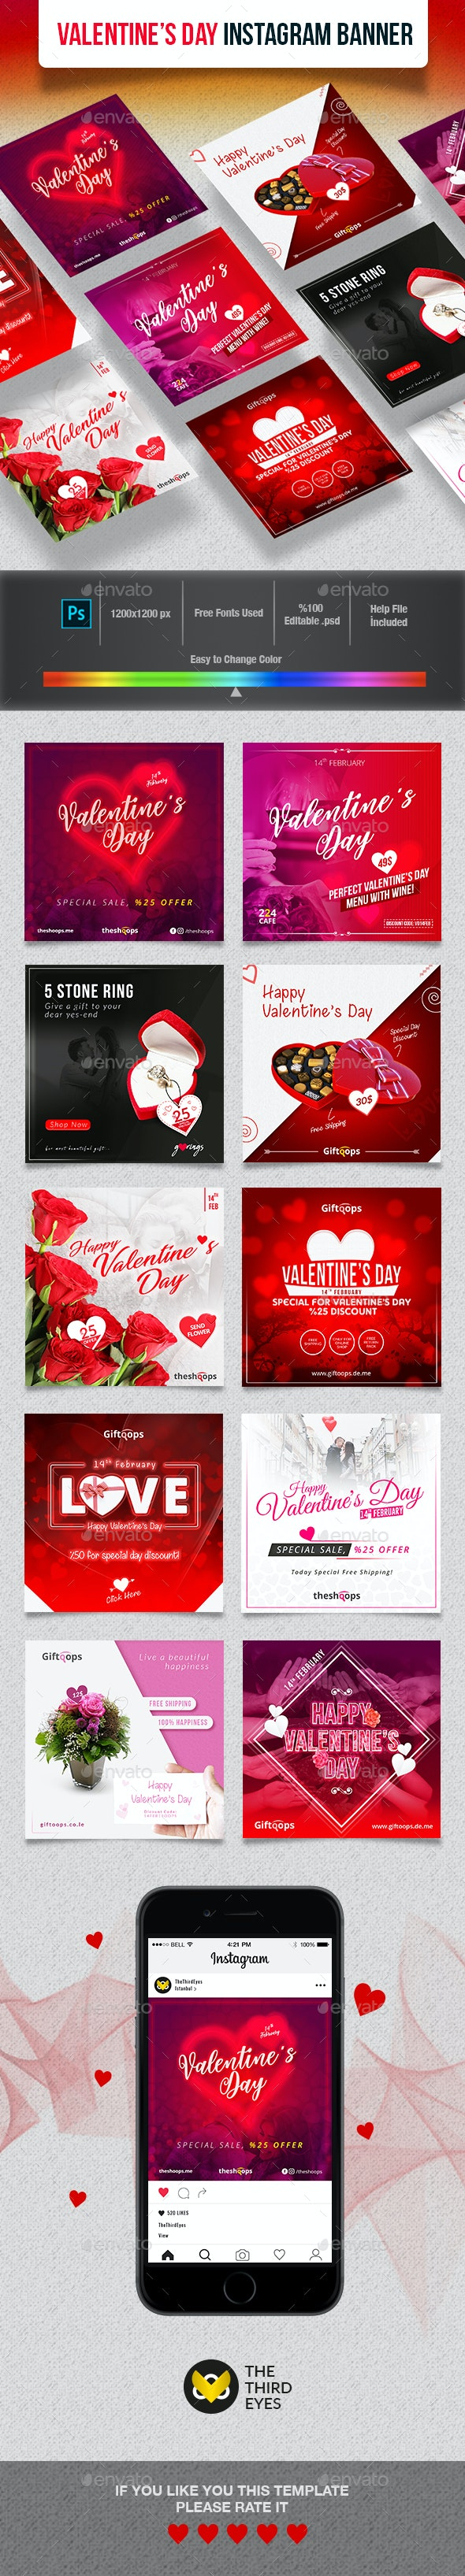 Valentines Day Instagram Banner - Social Media Web Elements